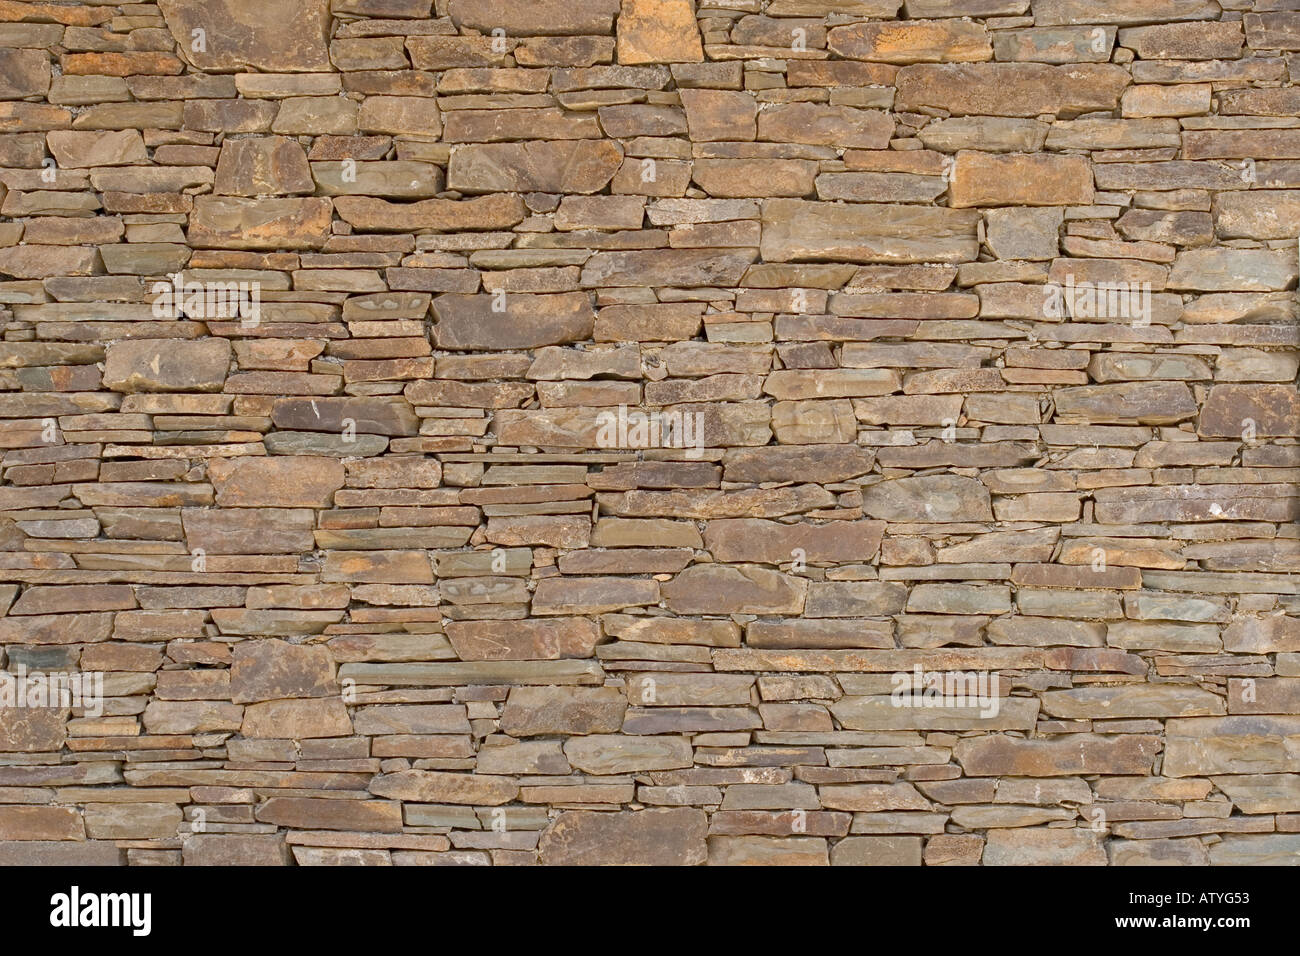 Dry Stacked Stone Wall - Stock Image